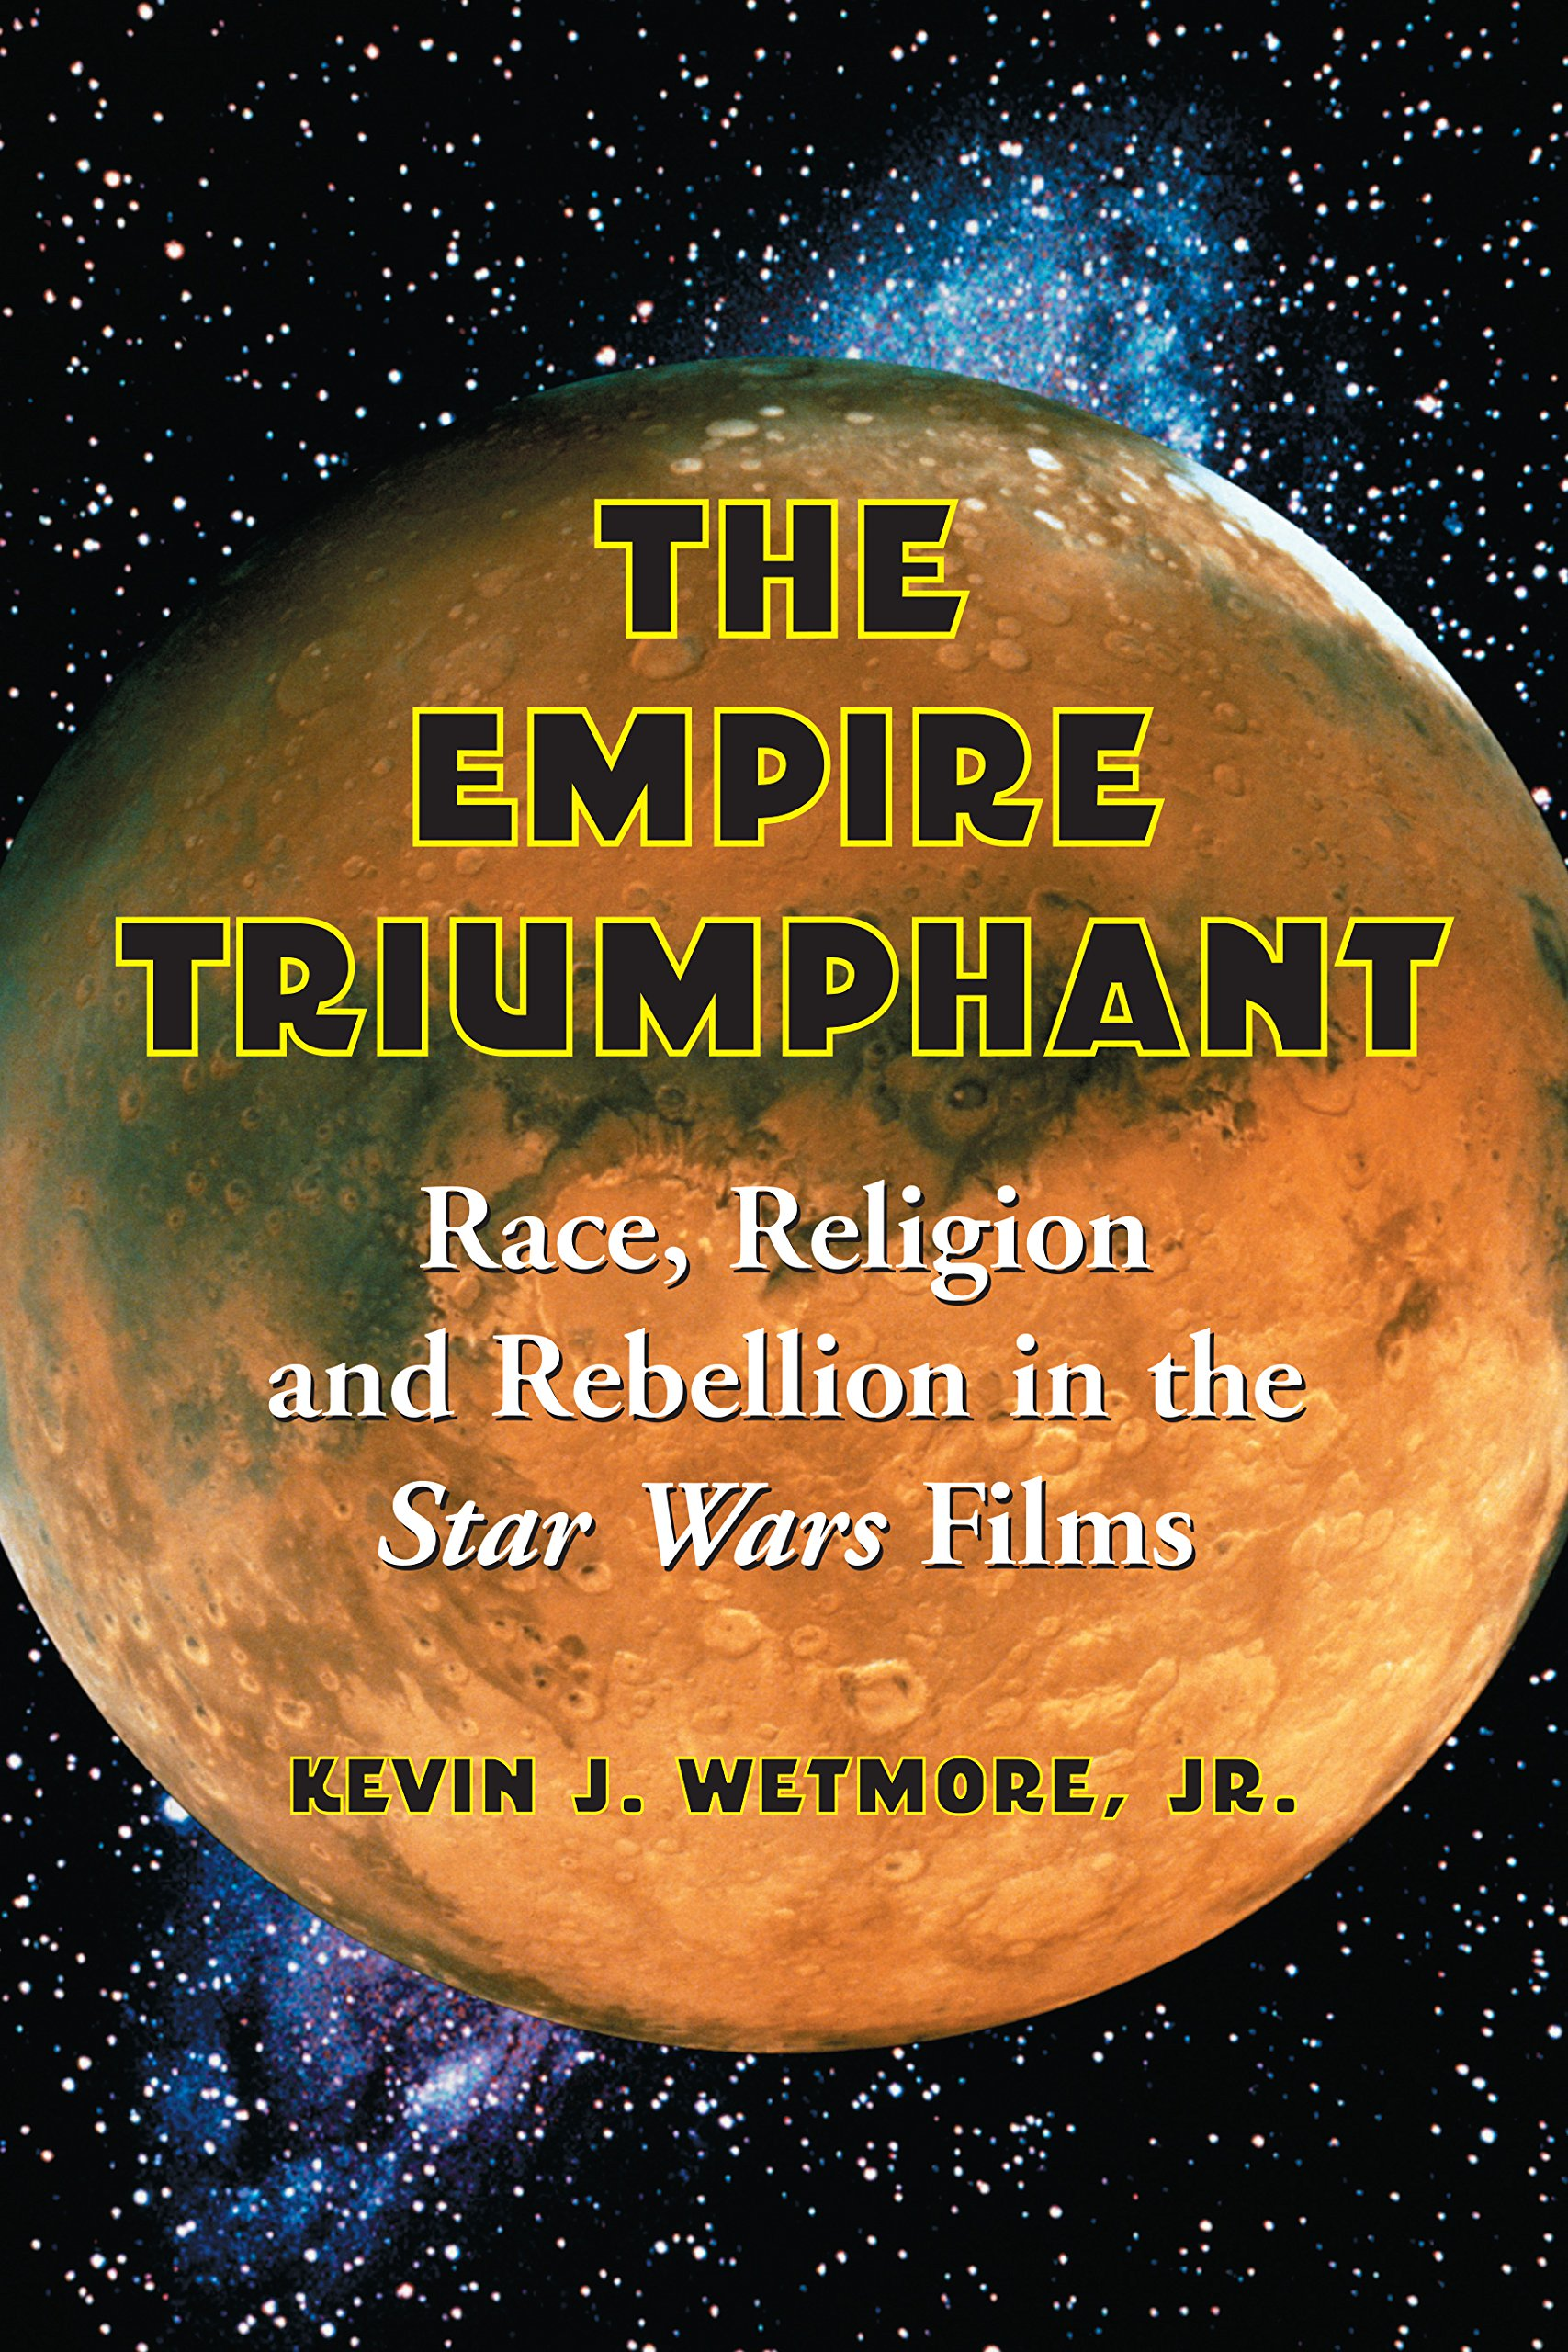 The Empire Triumphant